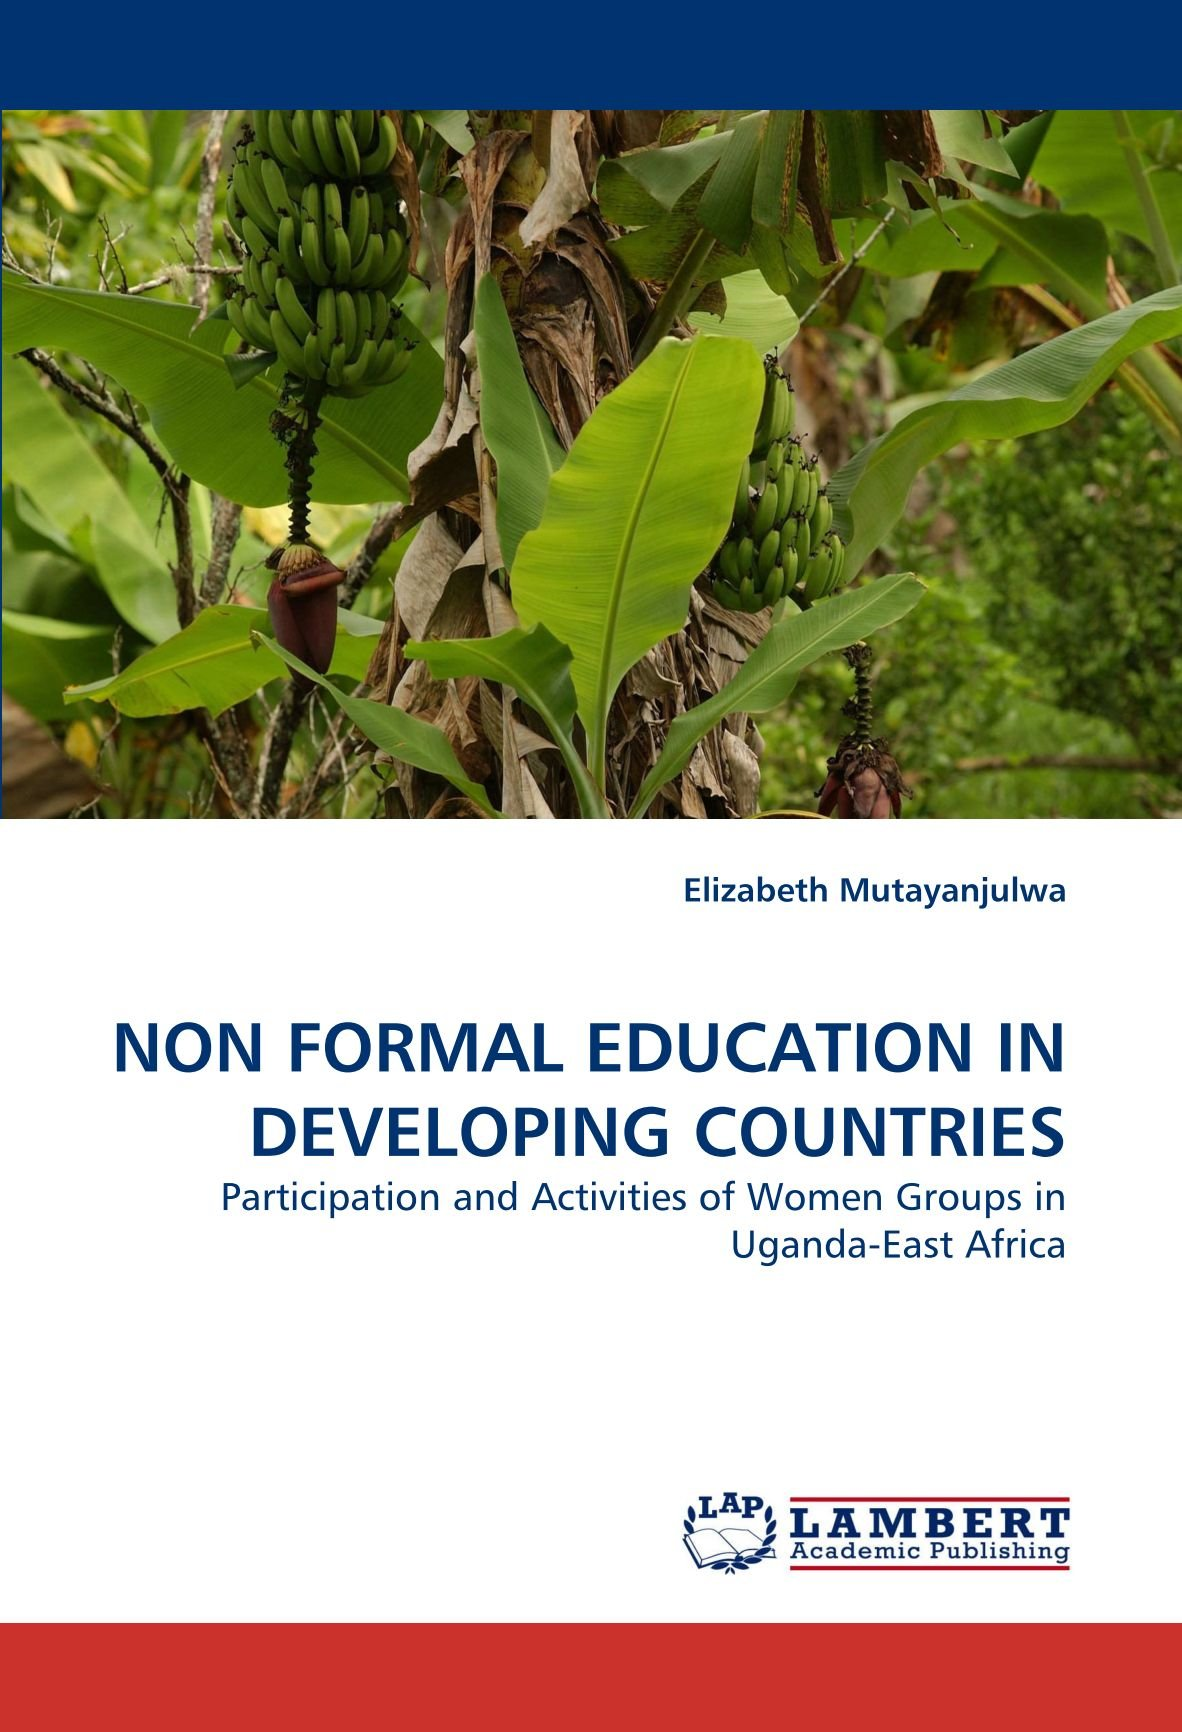 Read Online NON FORMAL EDUCATION IN DEVELOPING COUNTRIES: Participation and Activities of Women Groups in Uganda-East Africa PDF